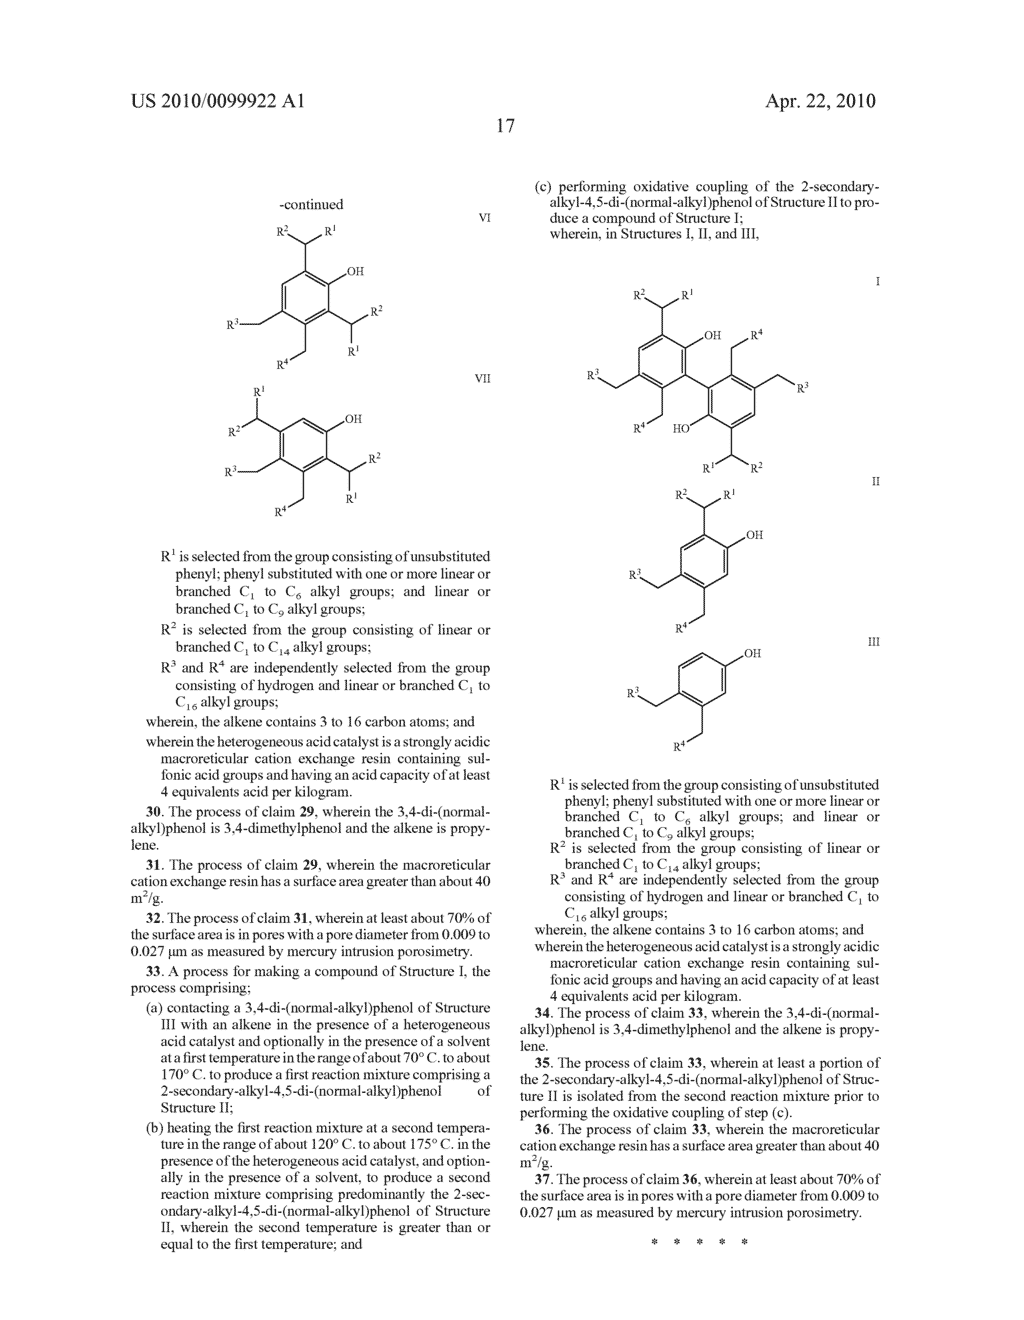 PROCESS FOR MAKING 2-SECONDARY-ALKYL-4,5-DI-(NORMAL-ALKYL)PHENOLS - diagram, schematic, and image 21